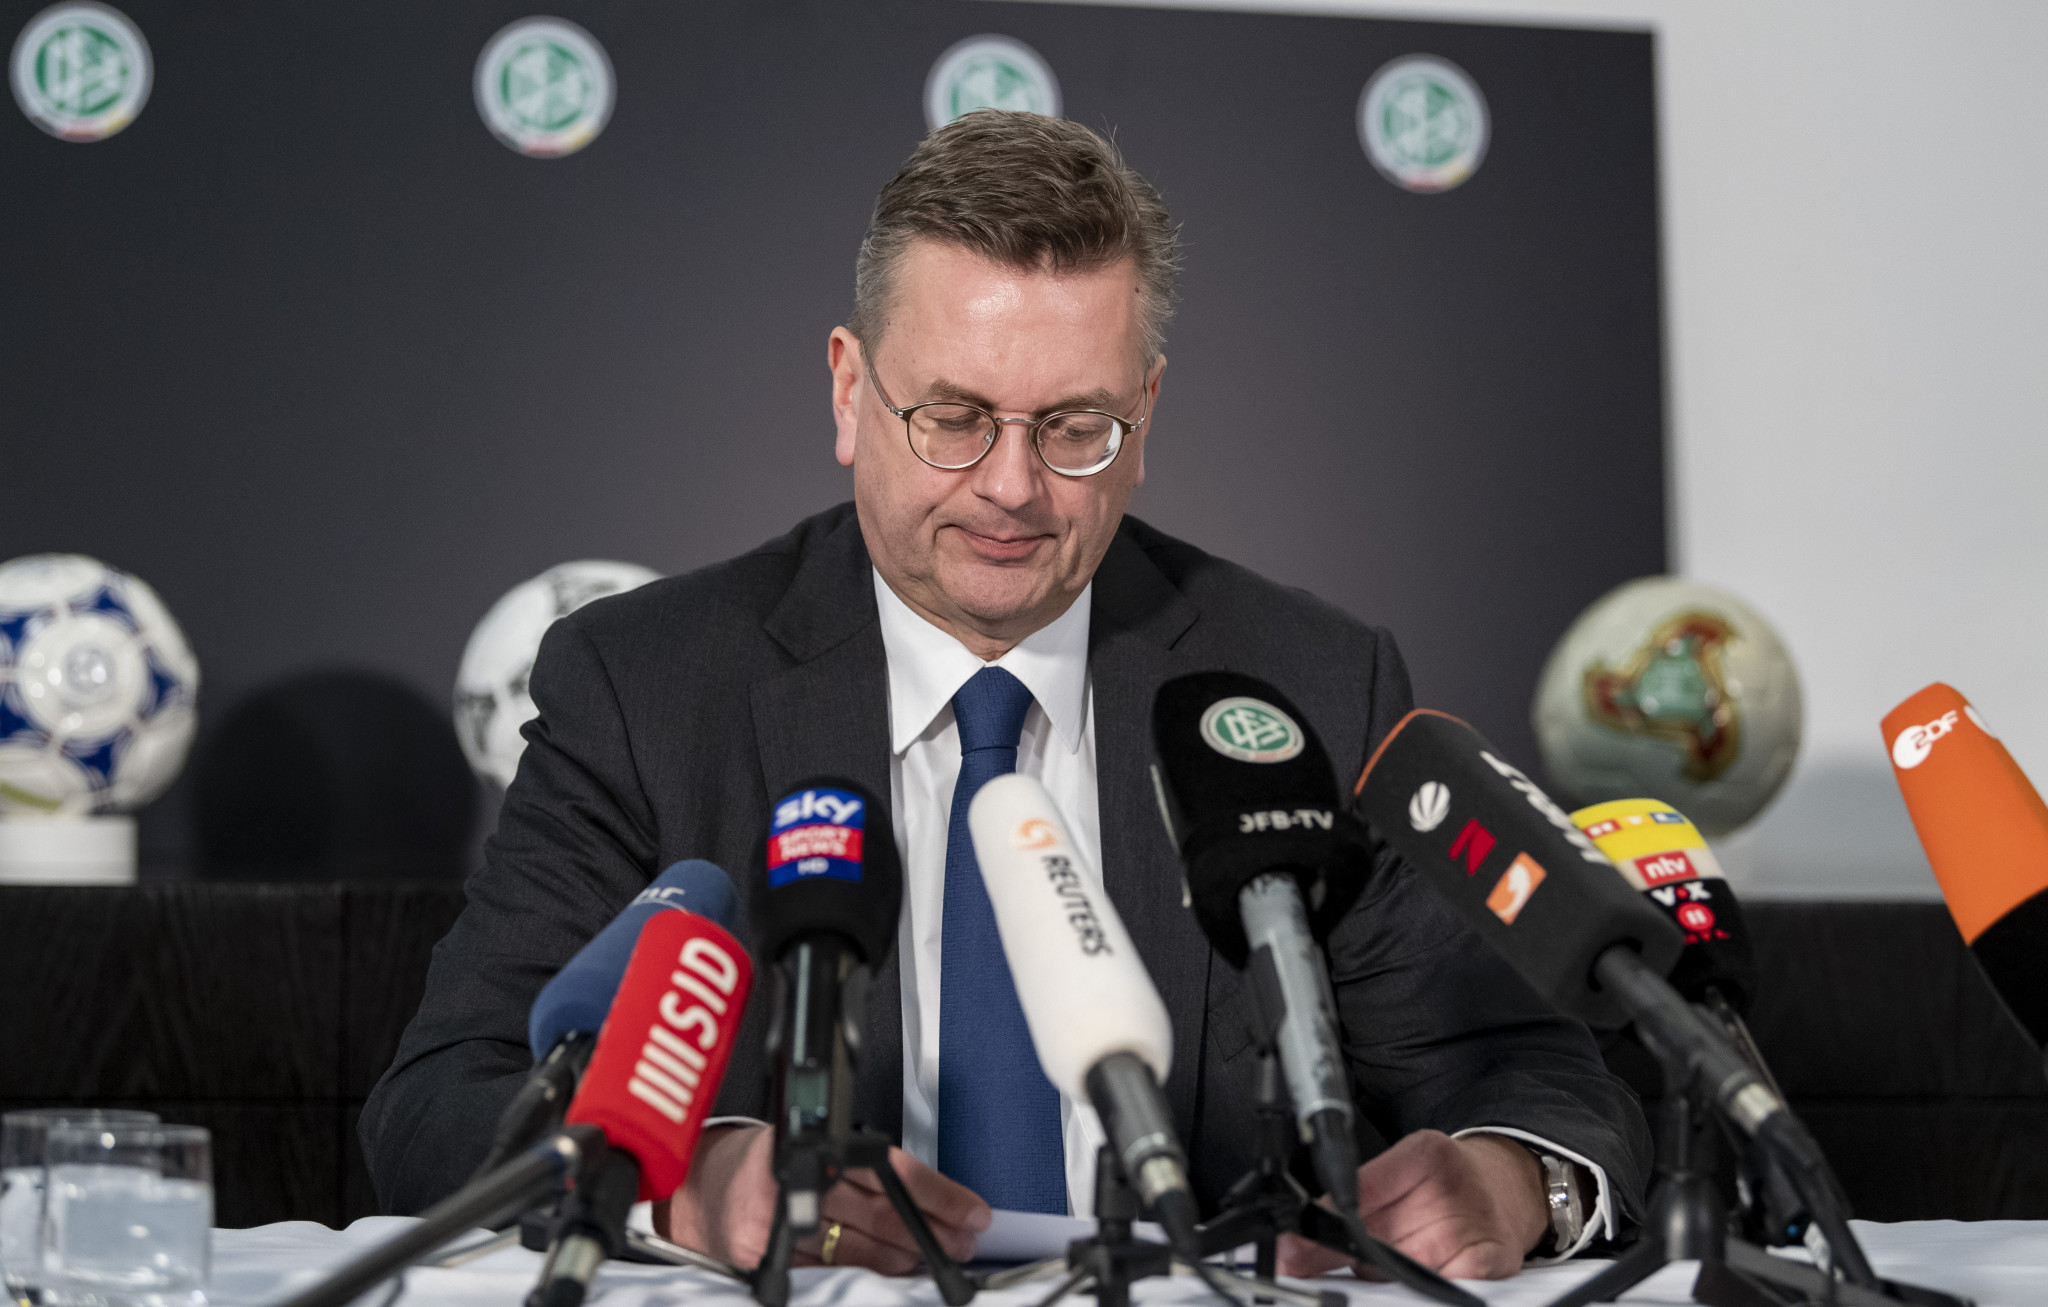 German Football Association President Grindel resigns following allegations of undeclared earnings